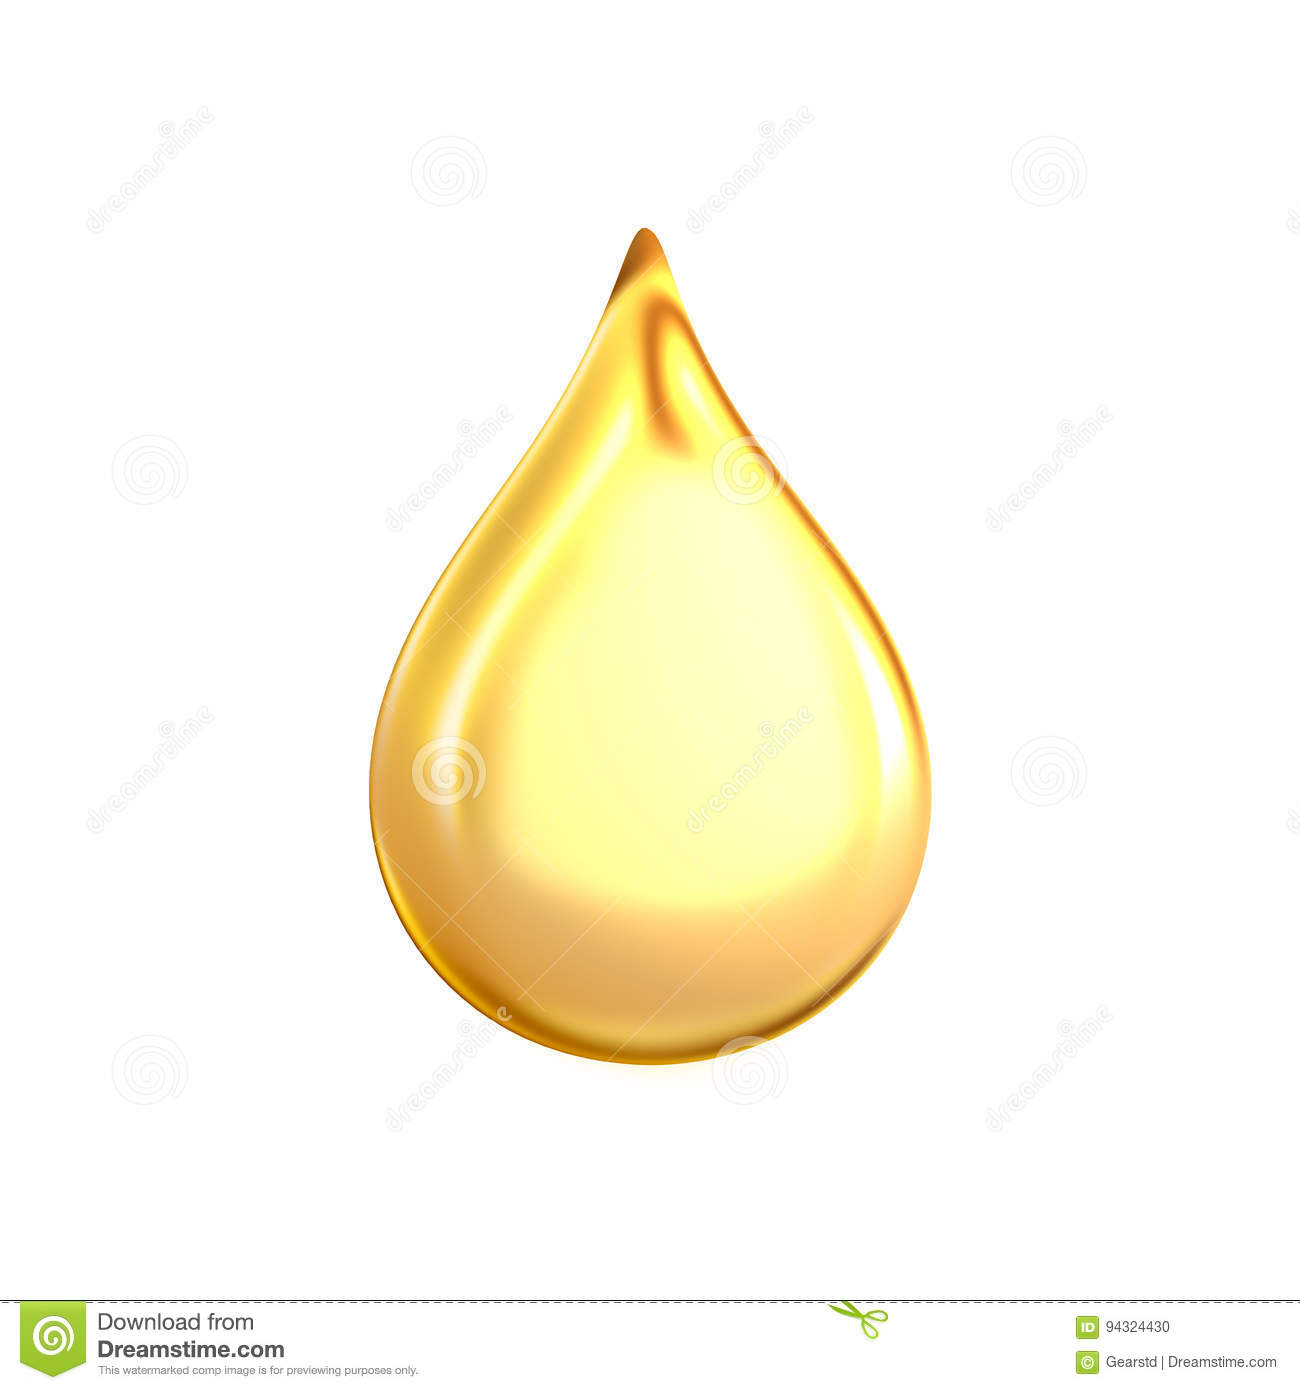 3d rendering of a large yellow bright and clean oil drop isolated on white background.